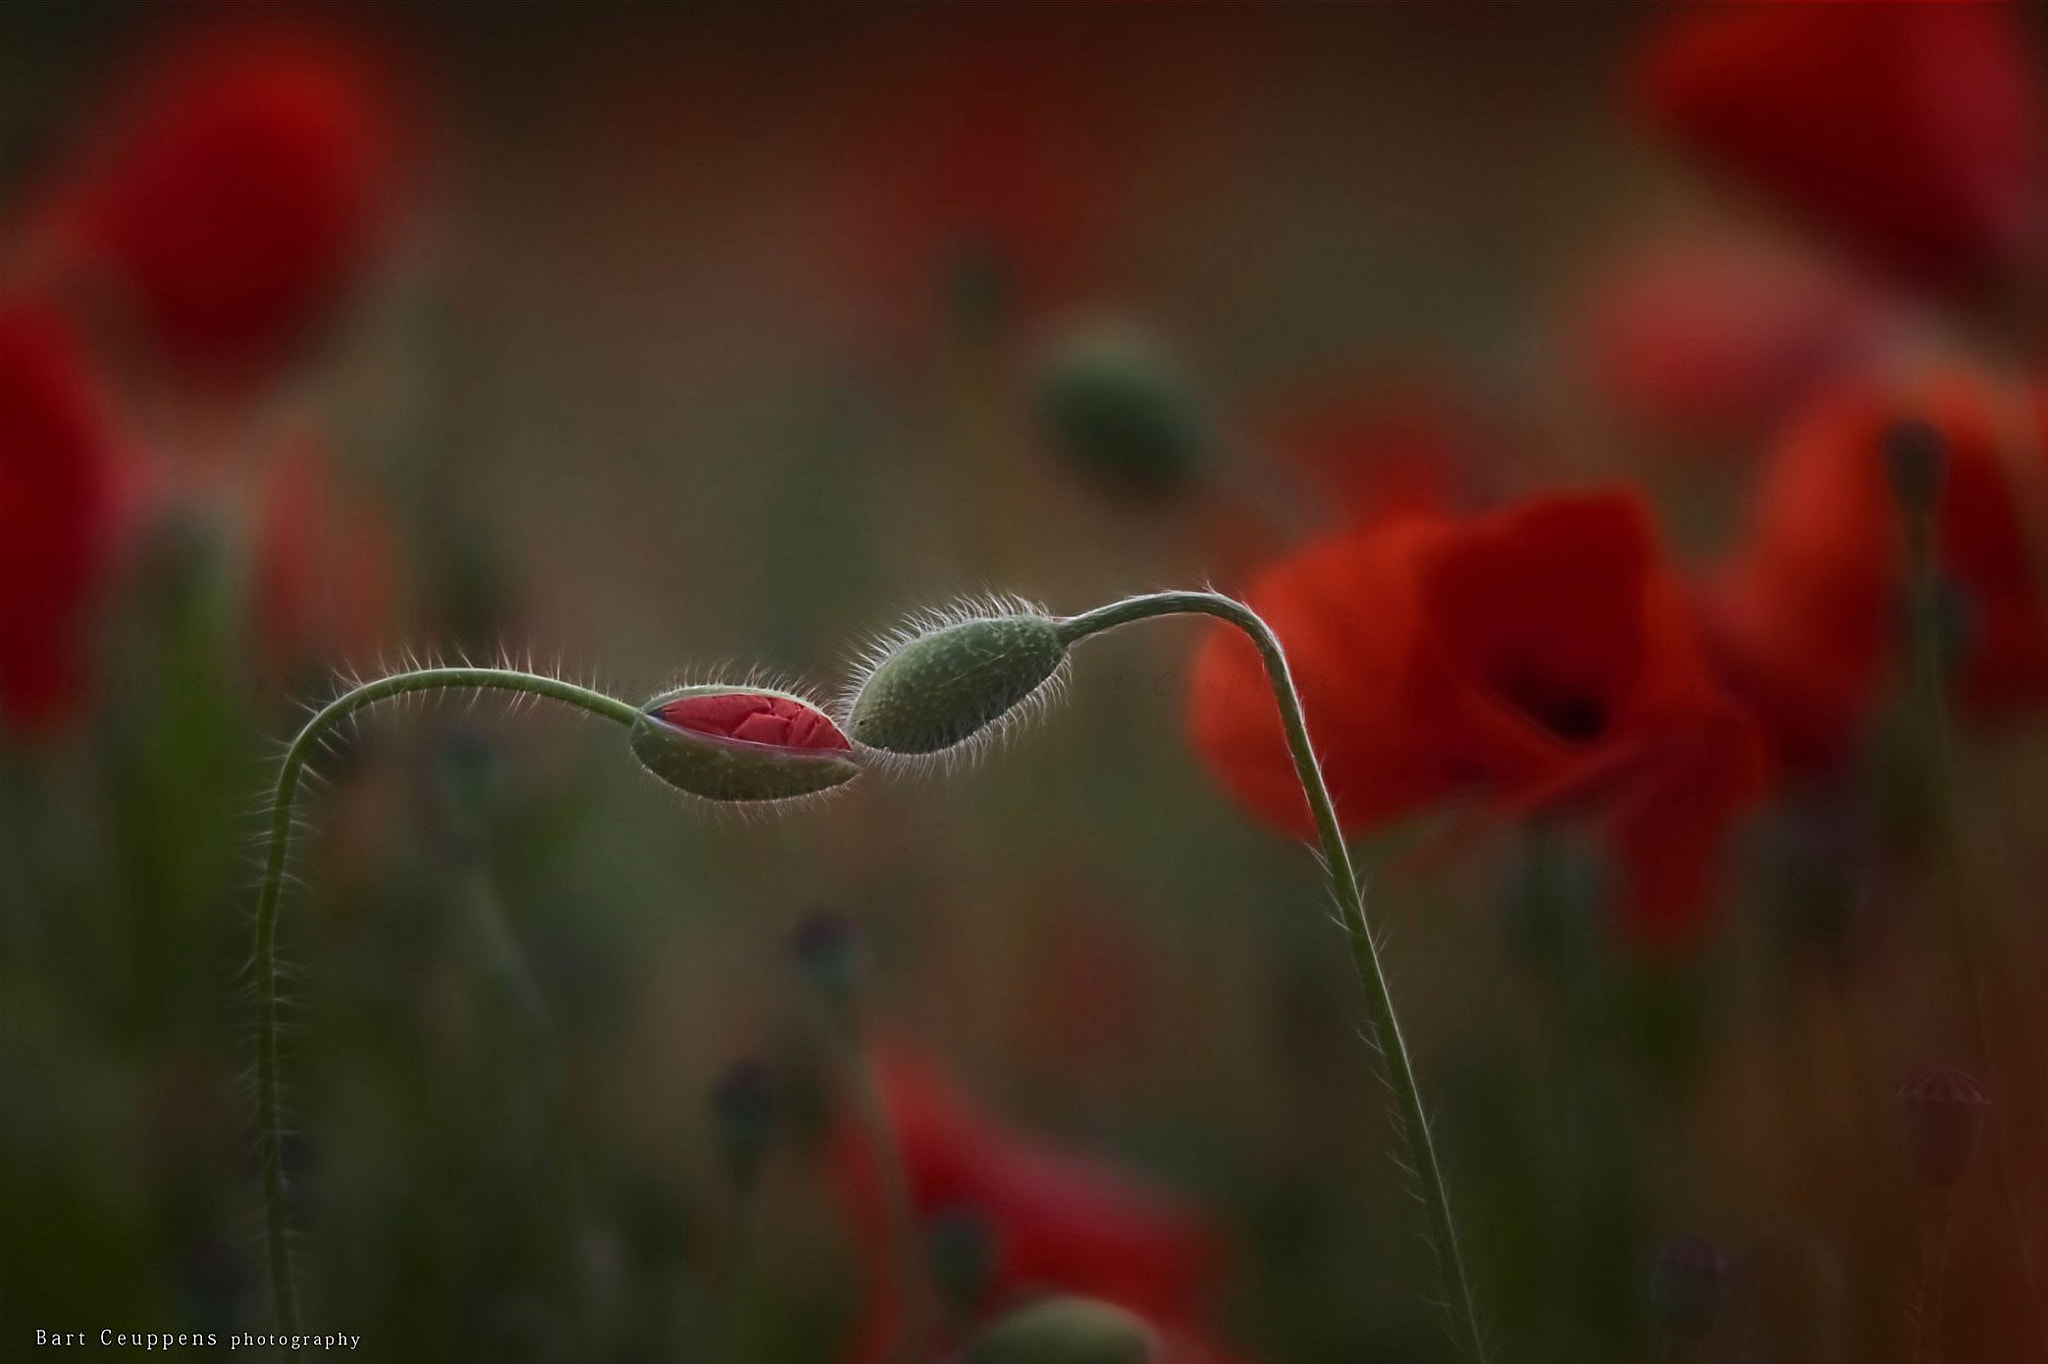 Photograph The kiss by Bart Ceuppens on 500px